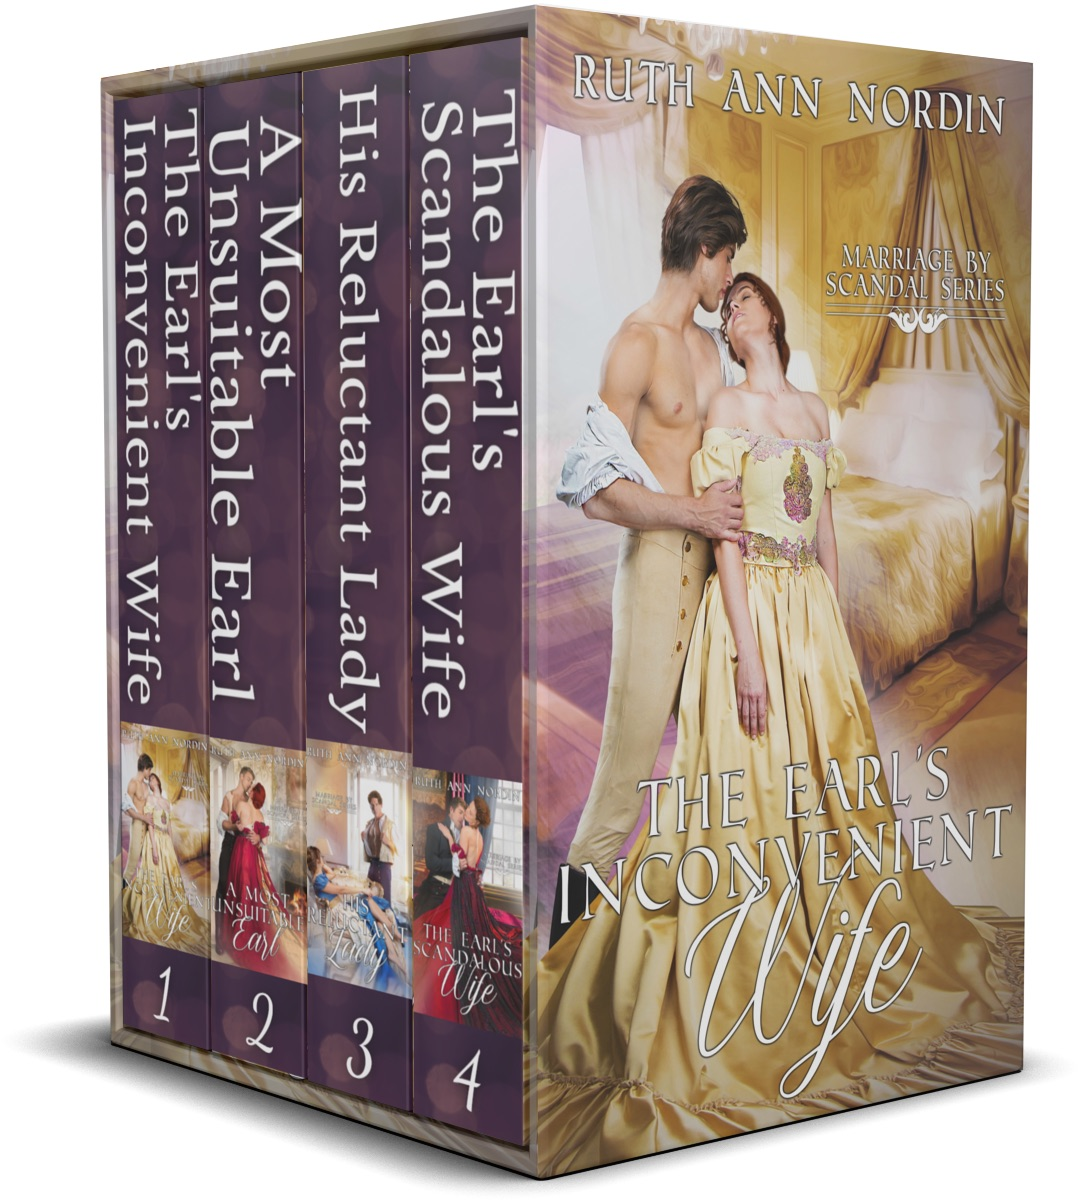 Marriage by Scandal Series Boxed Set